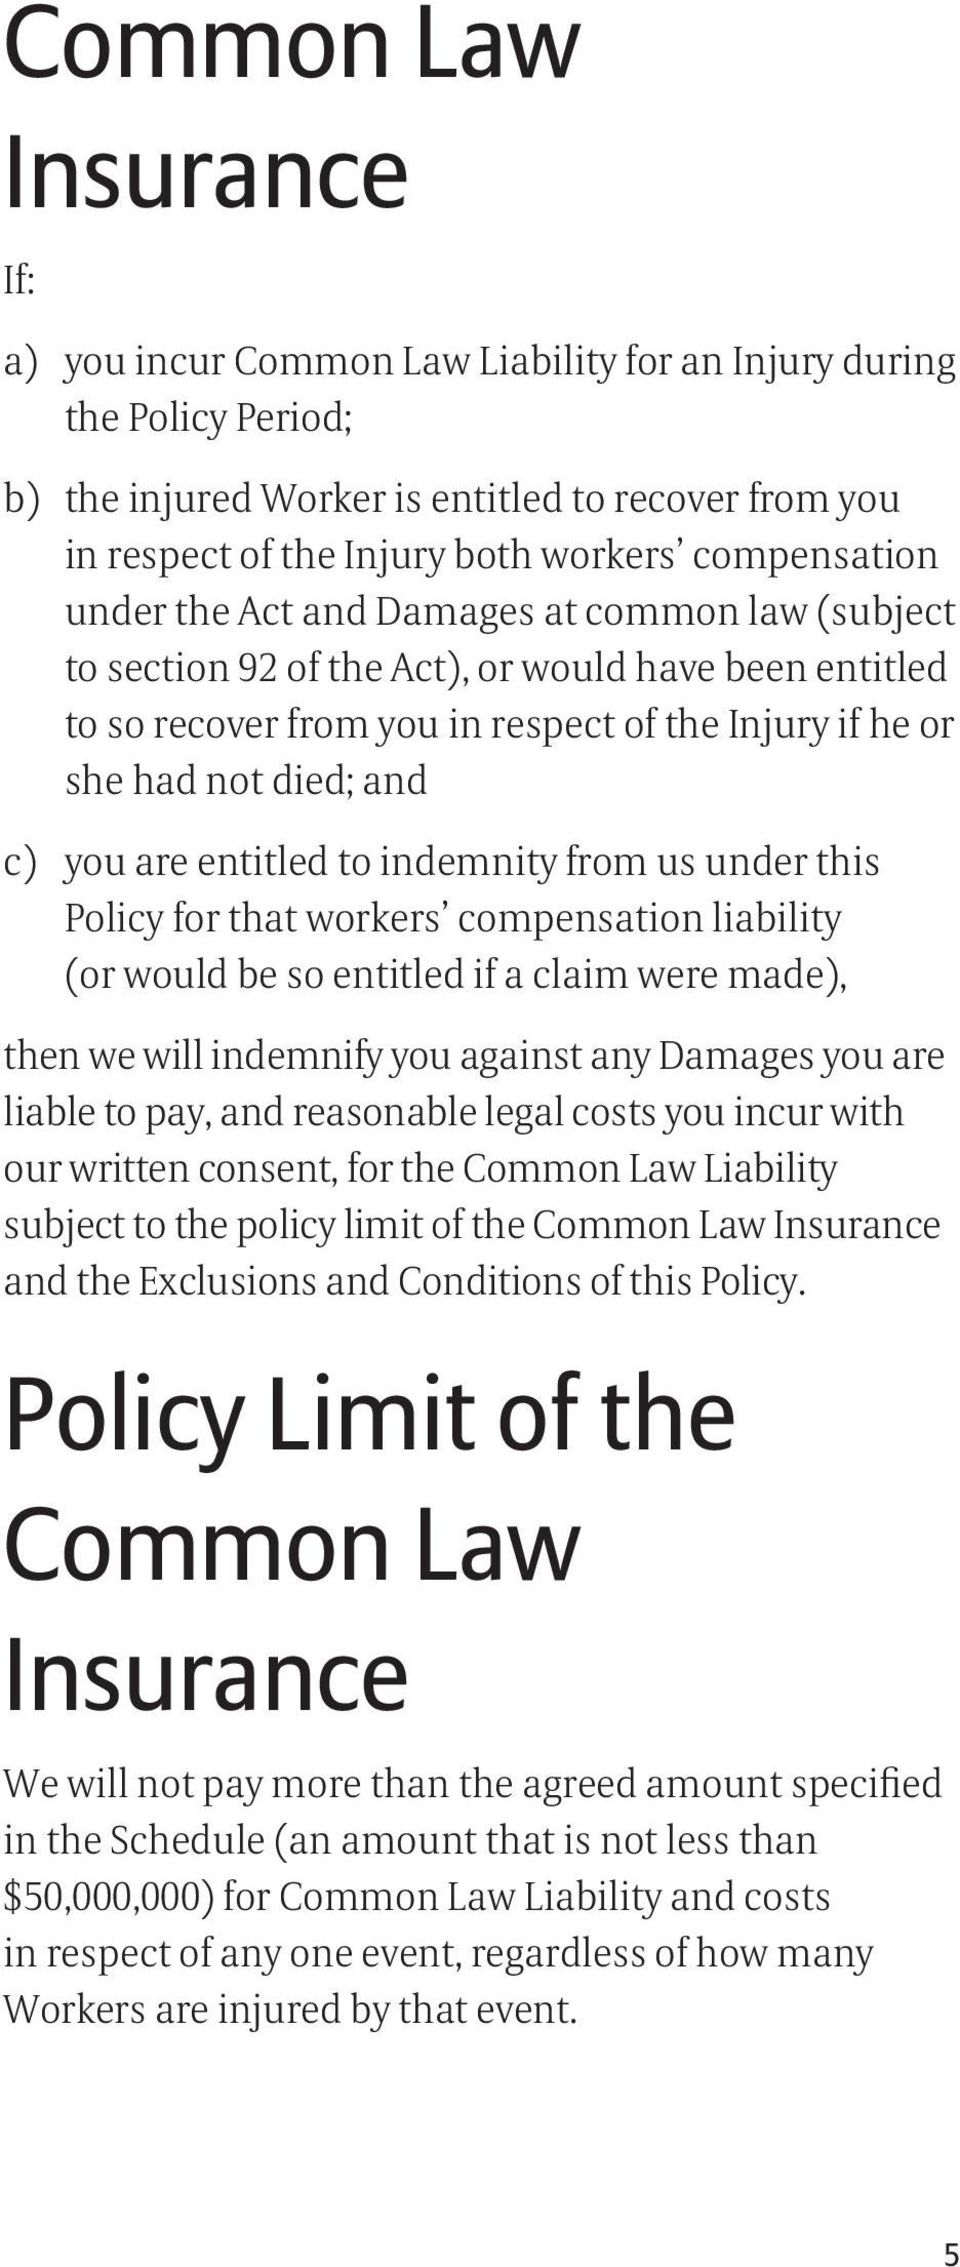 you are entitled to indemnity from us under this Policy for that workers compensation liability (or would be so entitled if a claim were made), then we will indemnify you against any Damages you are